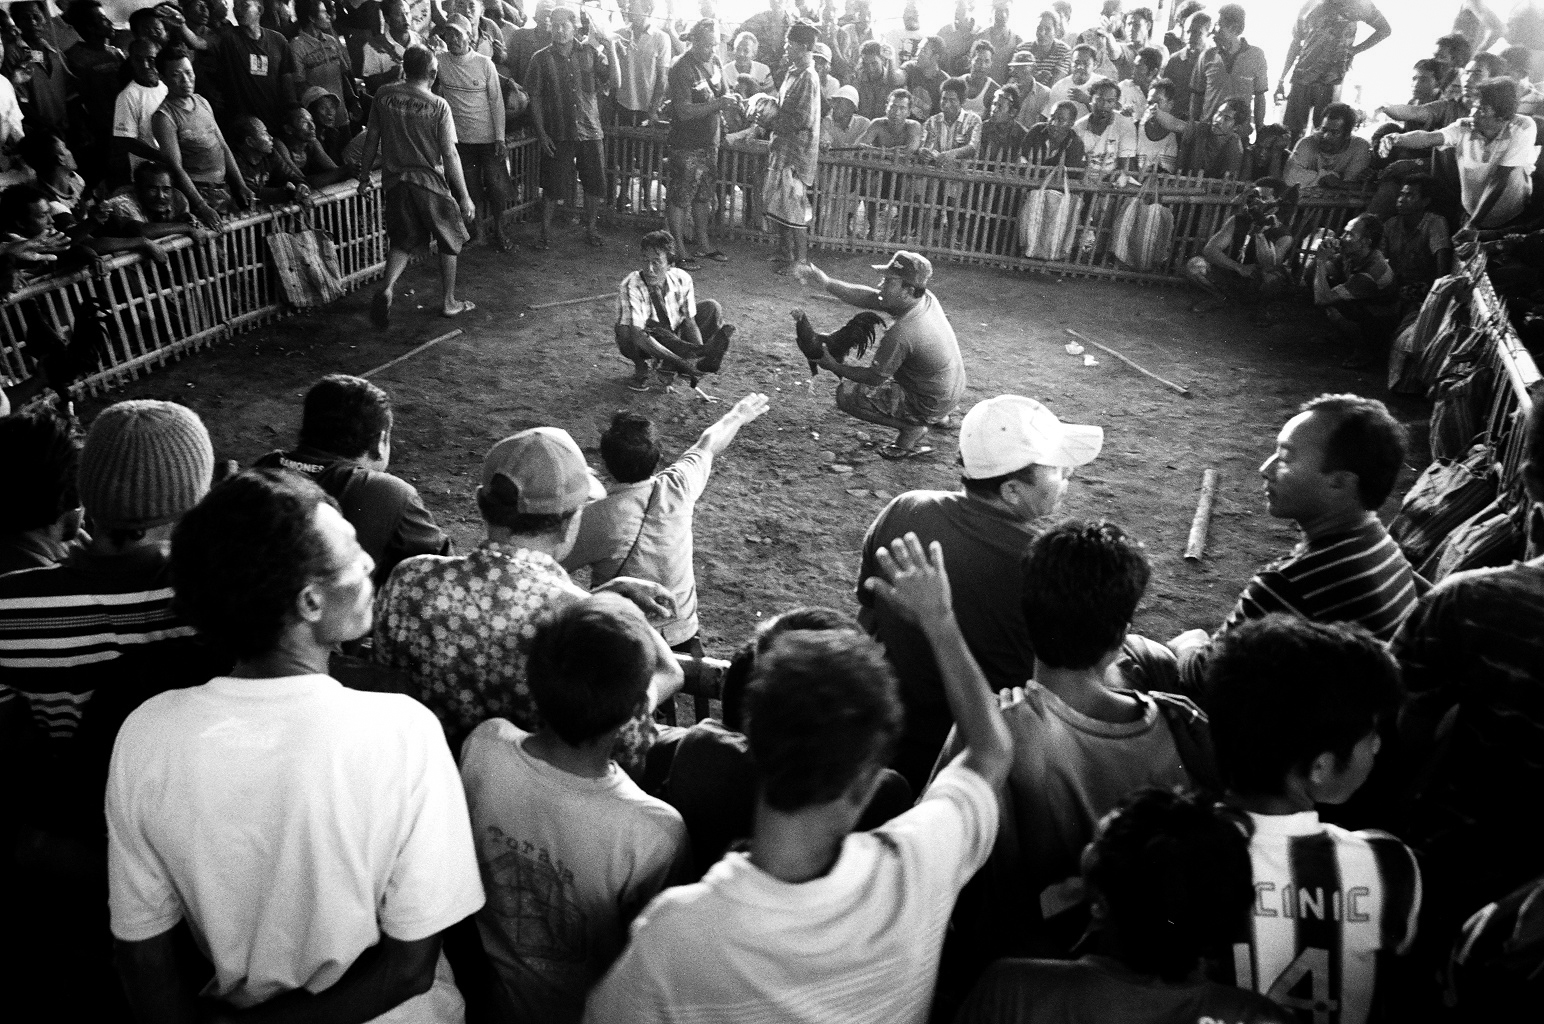 Amed, Bali, Indonesia. 2012.  Once the birds are ready to fight, they are placed face to face by their handlers. The spectators then begin chanting and placing bets on their favorite fighter.